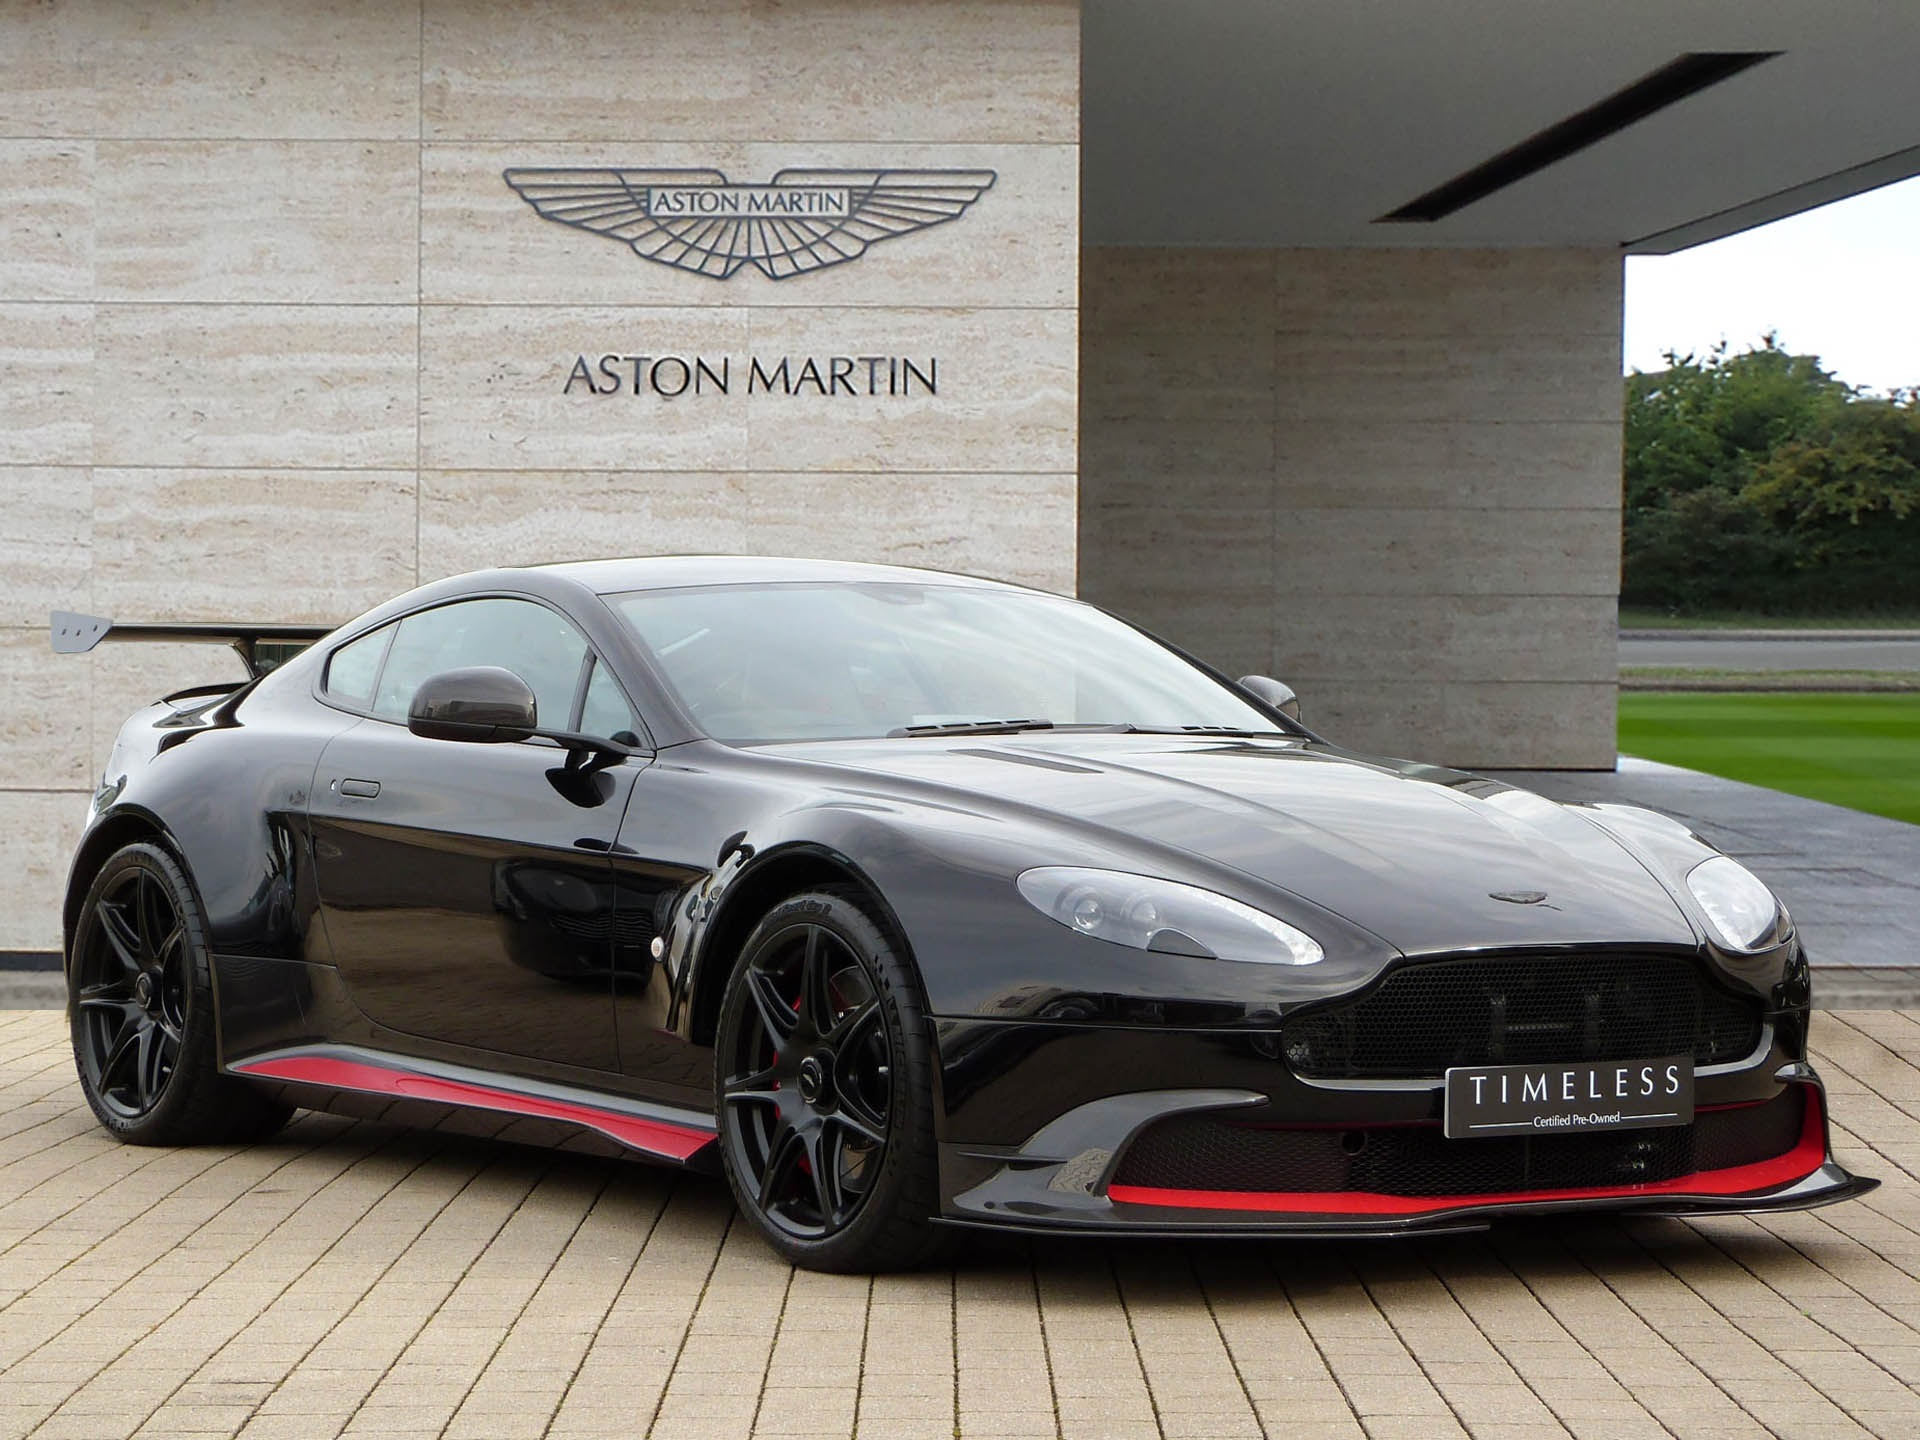 a vendre aston martin vantage gt8 actualit automobile motorlegend. Black Bedroom Furniture Sets. Home Design Ideas